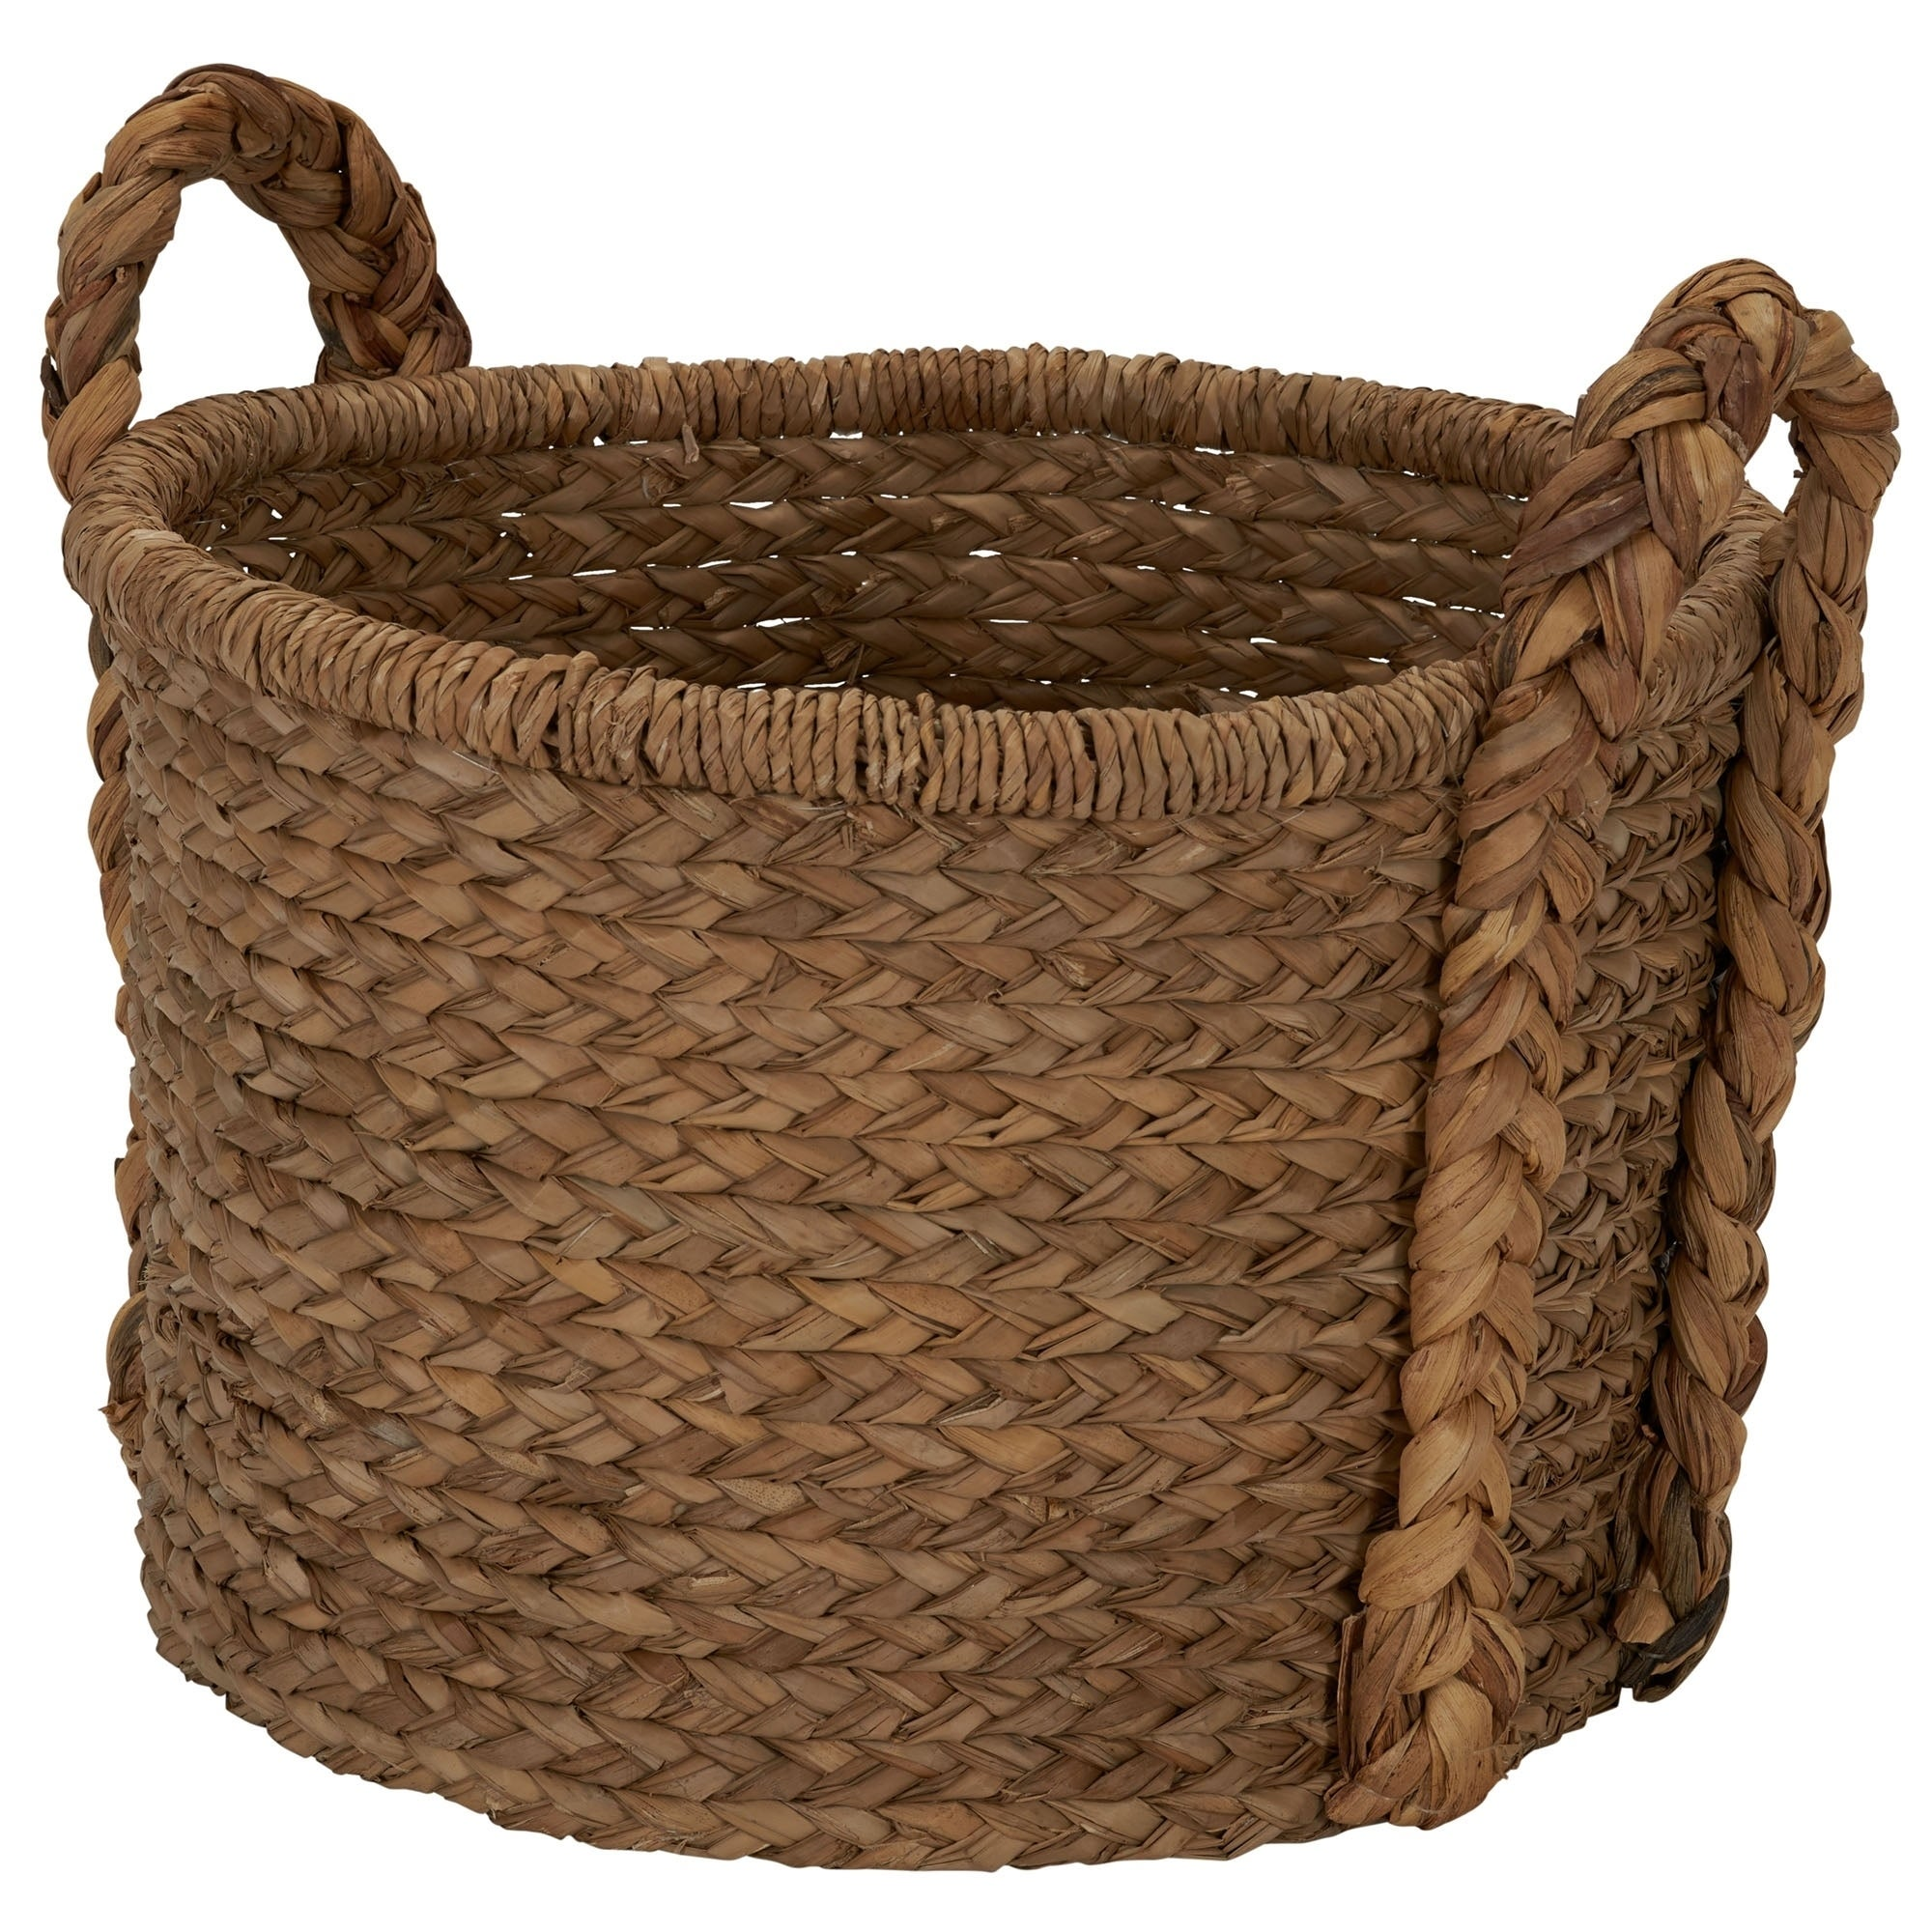 Household Essentials Large Wicker Floor Basket With Braided Handle On Free Shipping Today 12730261